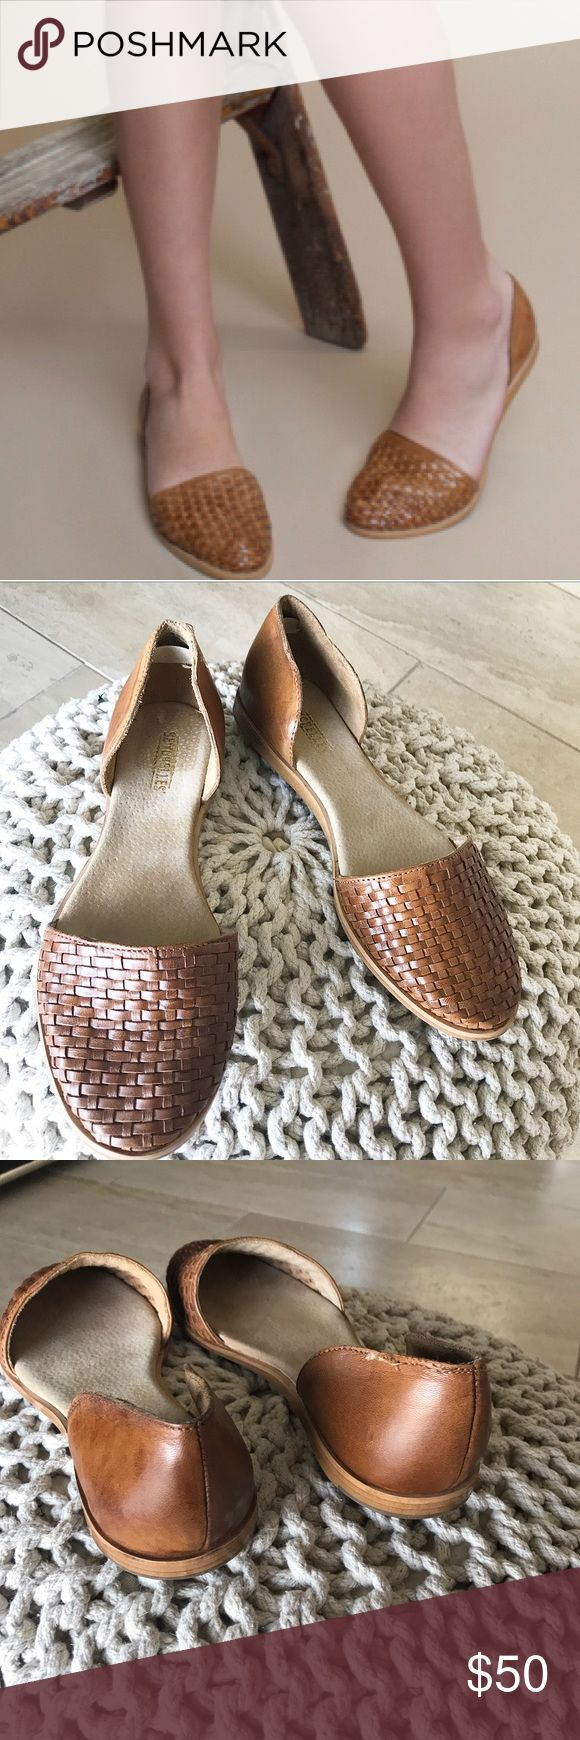 """Seychelles woven leather flats Best in shoes HP! New without box, unworn Seychelles """"eager"""" woven leather d'orsay flats in the color cognac. Simply classic and versatile. Fits true to size. No trades. Seychelles Shoes Flats & Loafers"""